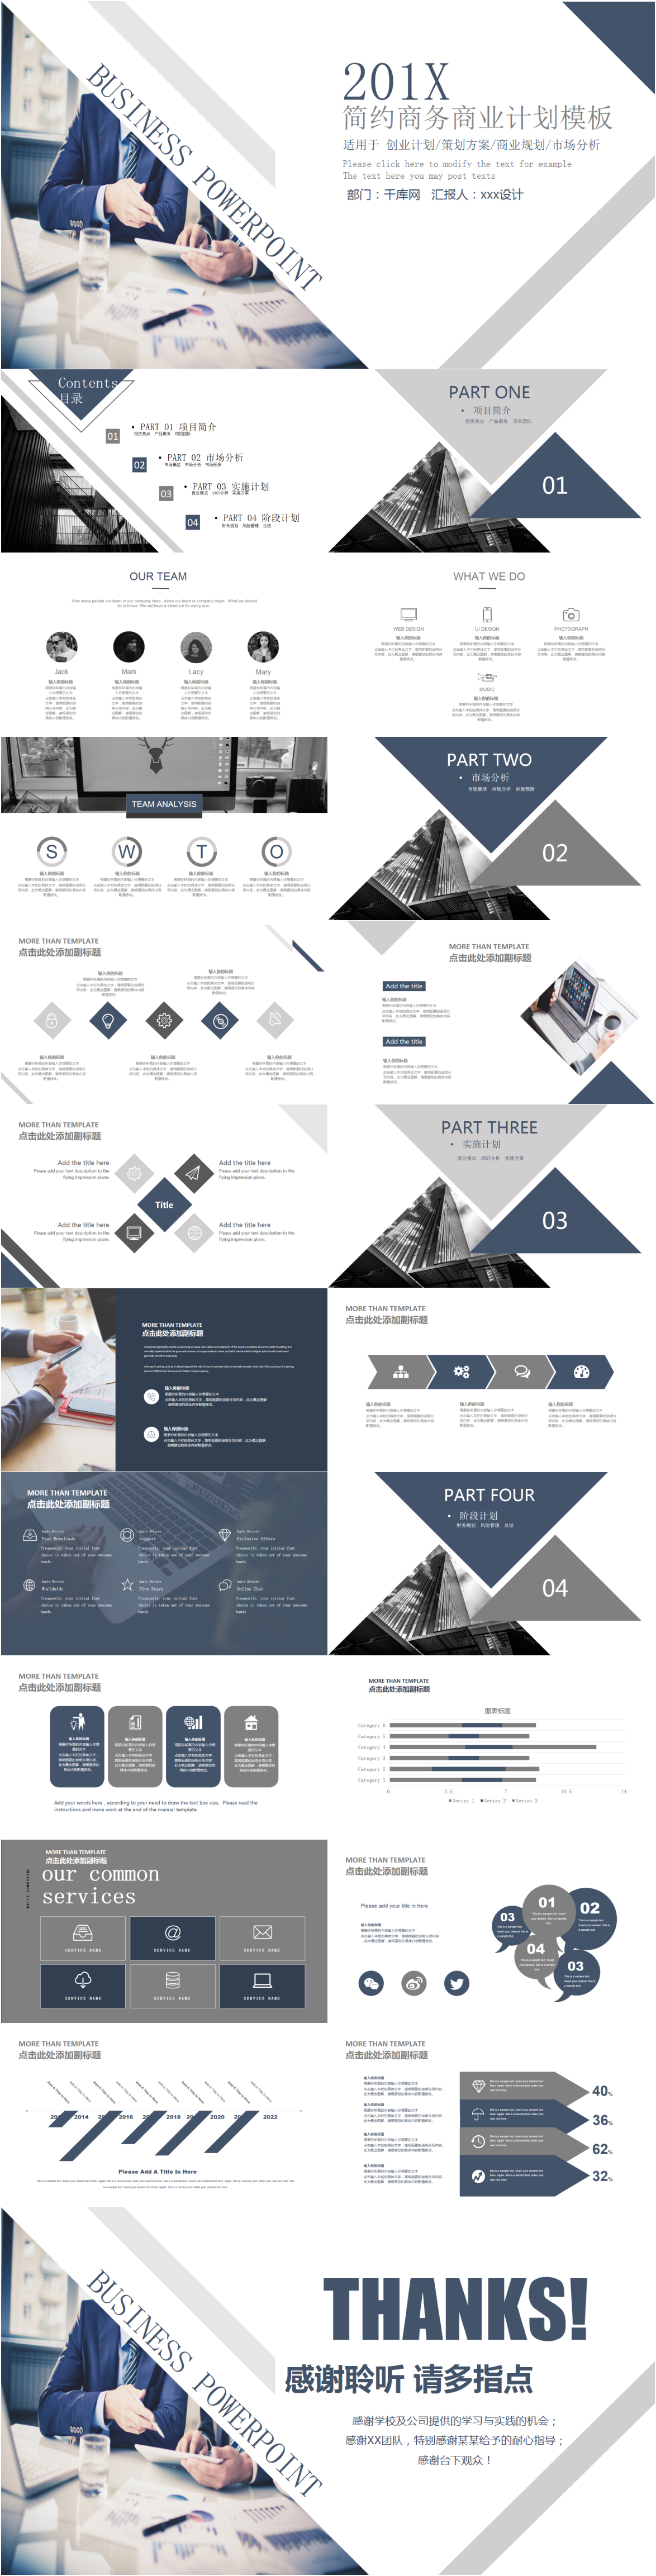 Awesome business wind business plan work keynote template for free business wind business plan work keynote template accmission Image collections